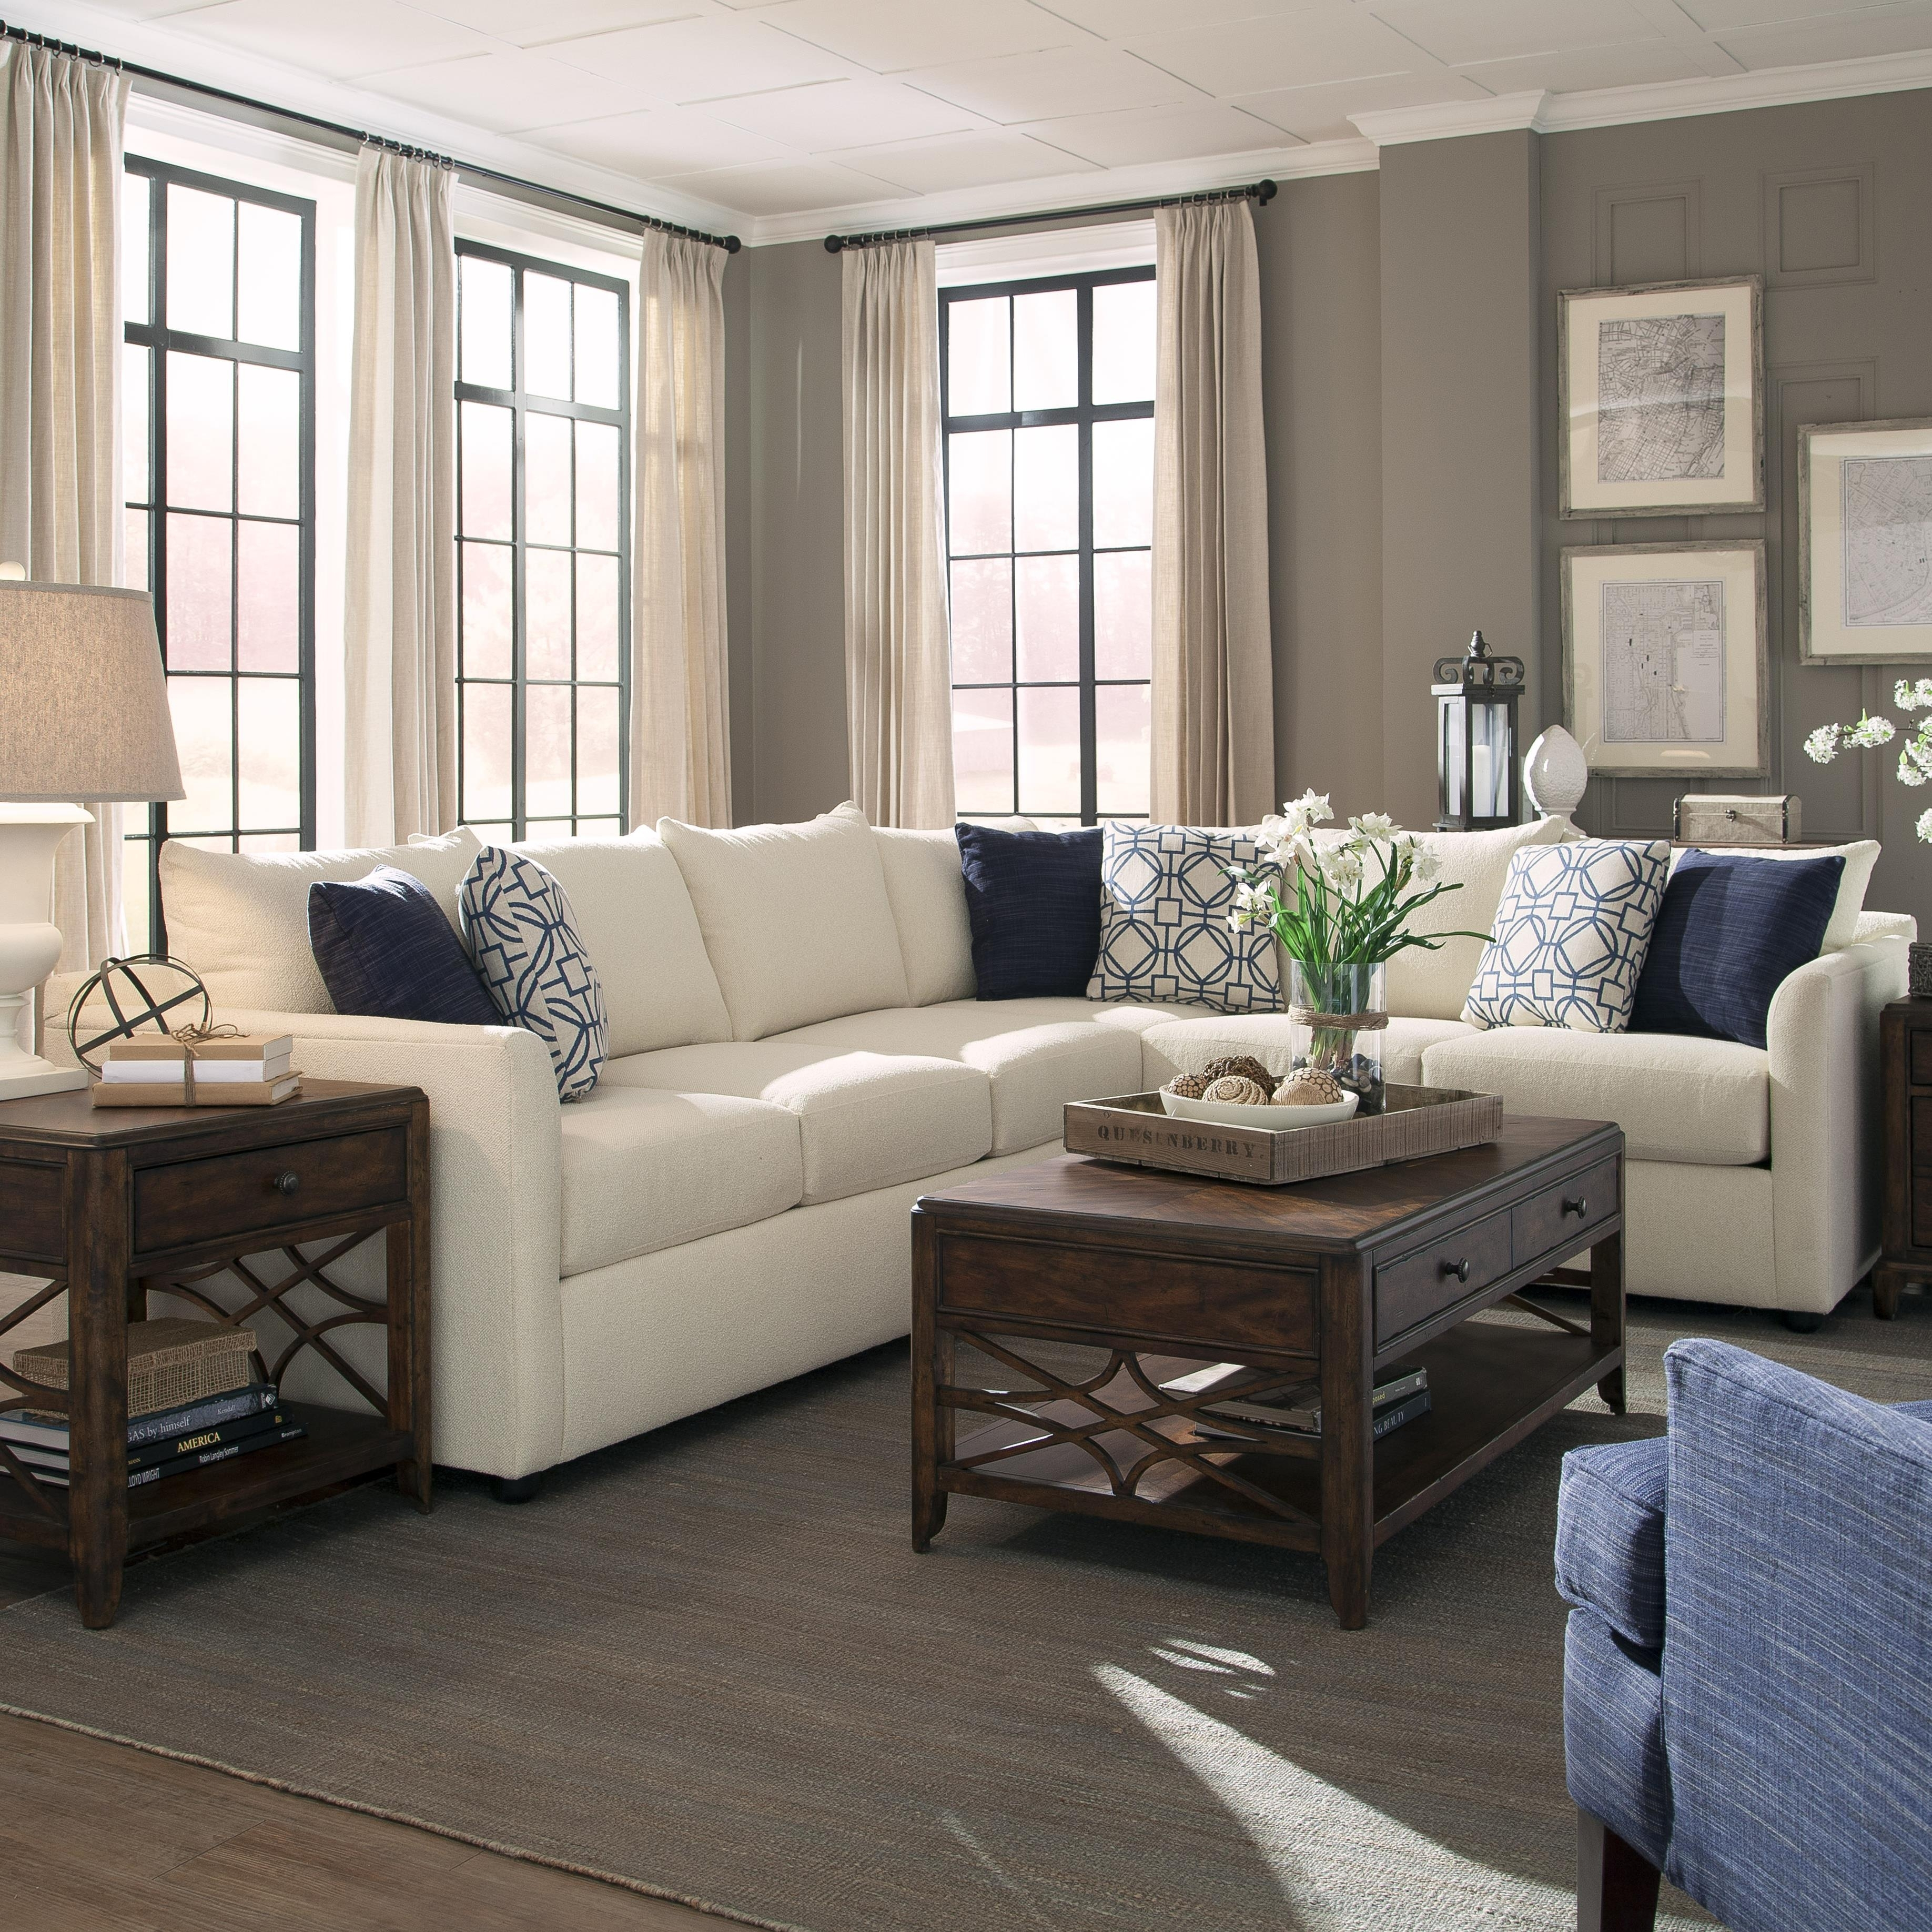 A Beautiful 2 Piece Sectional From Trisha Yearwood's Home Collection Intended For Sectional Sofas At Atlanta (View 1 of 15)